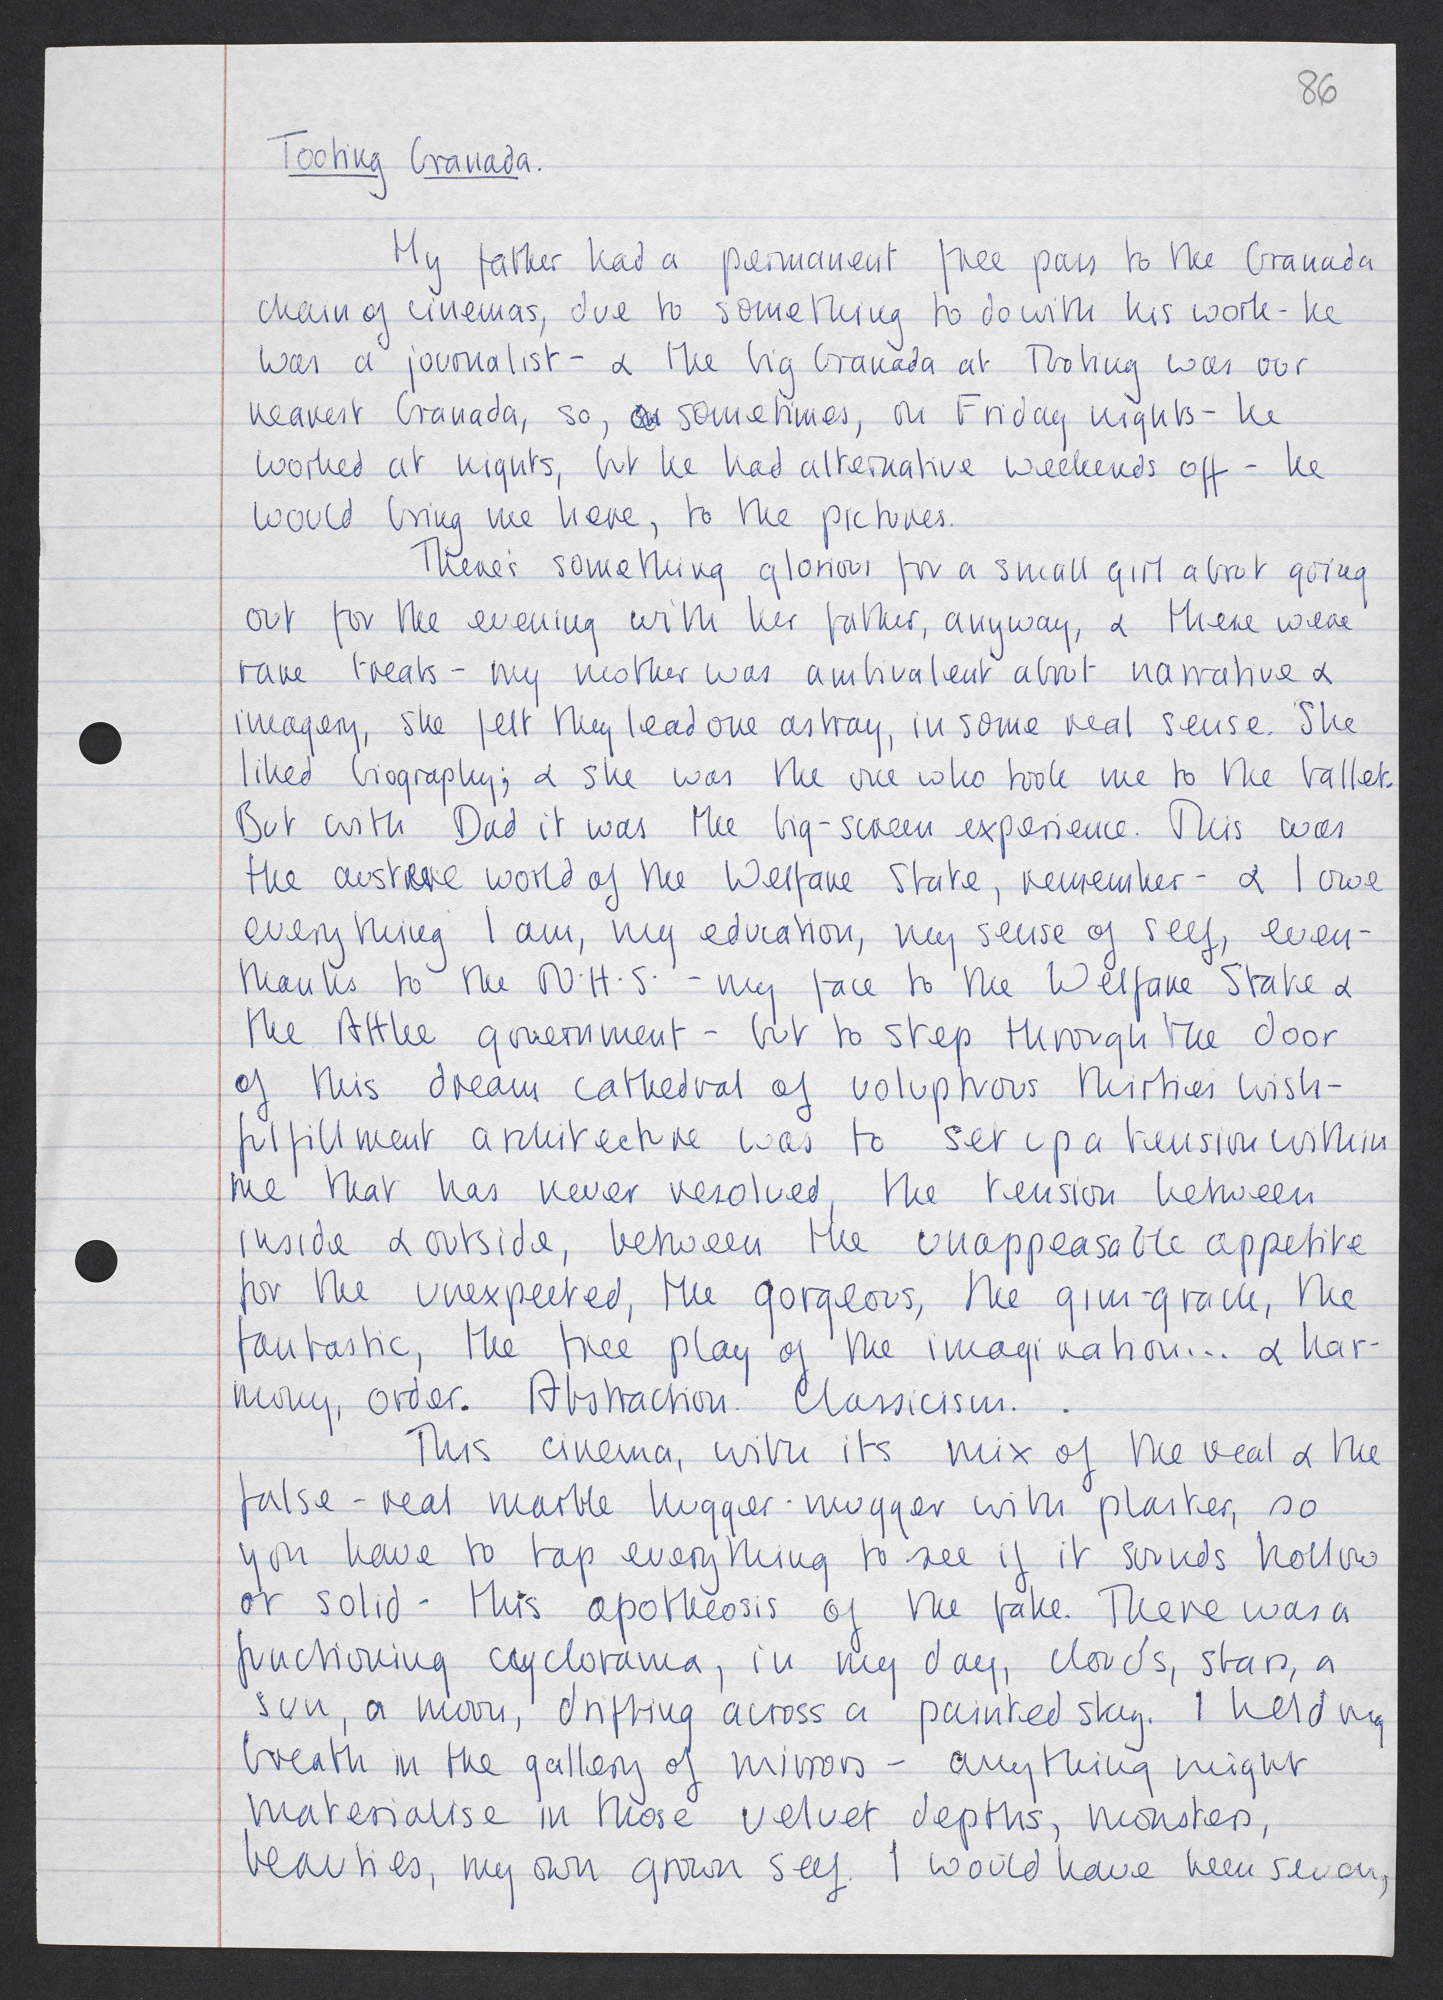 Manuscript notes about Tooting Granada cinema by Angela Carter